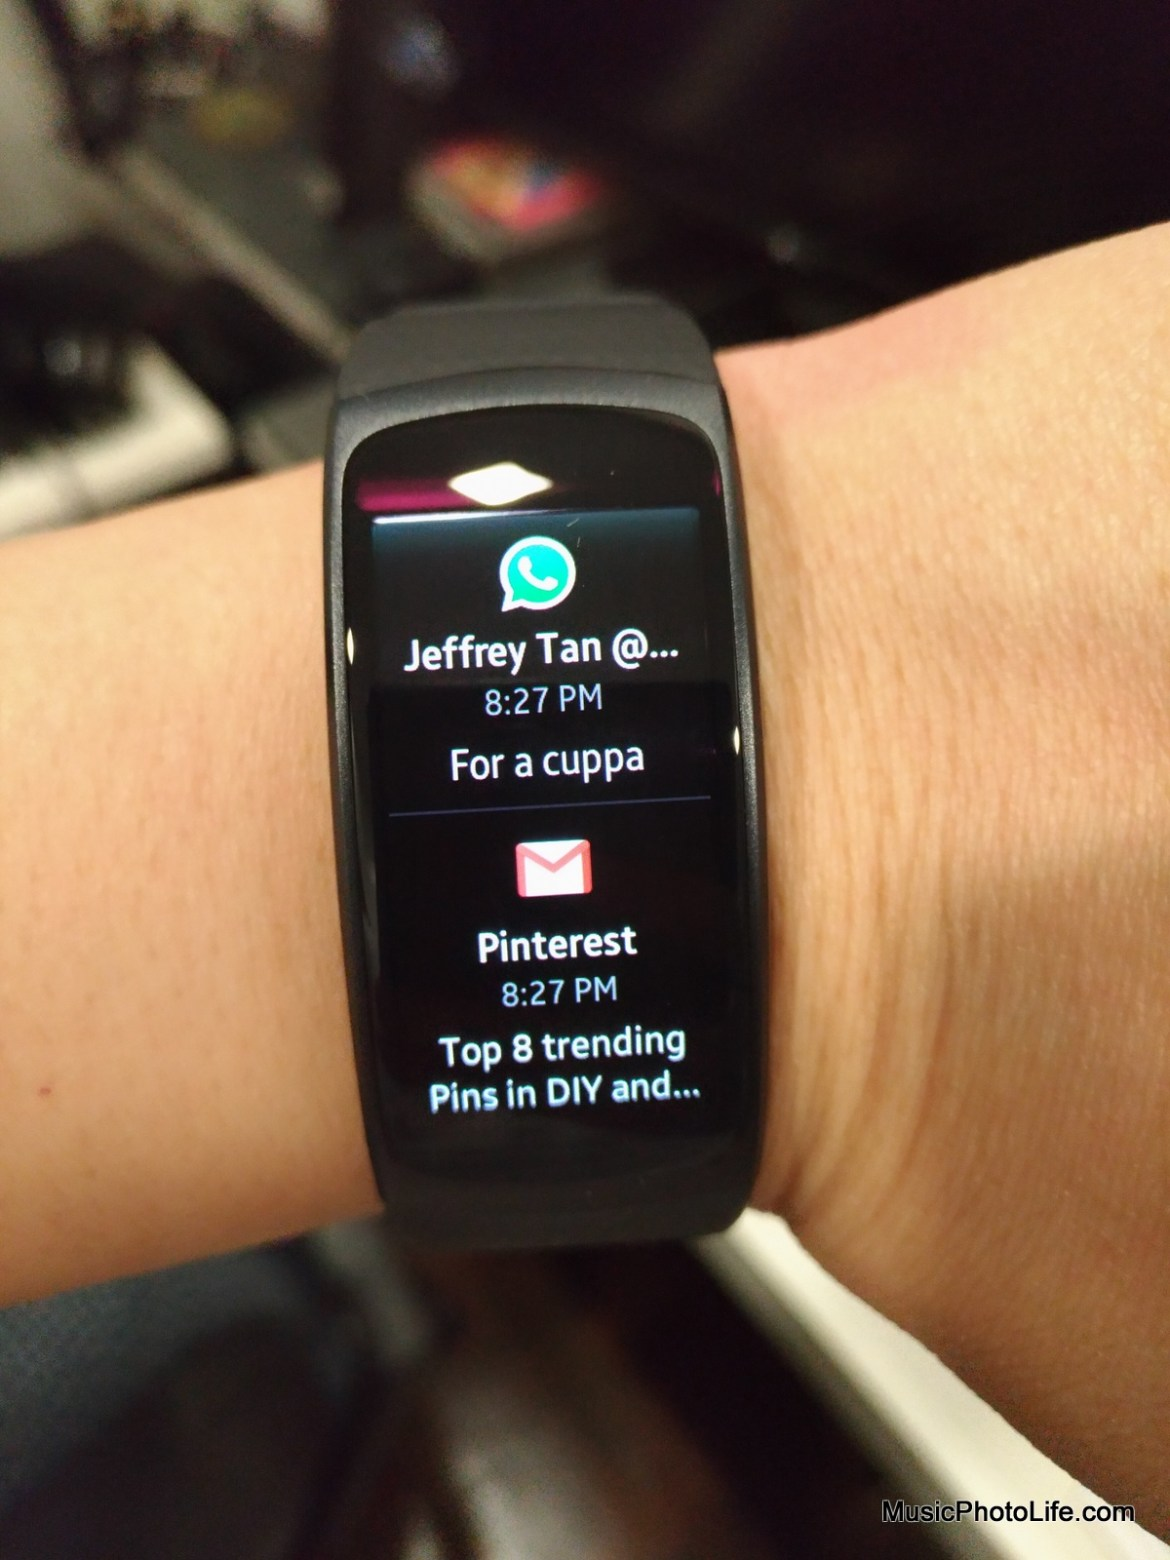 Samsung Gear Fit2 displays full notification messages